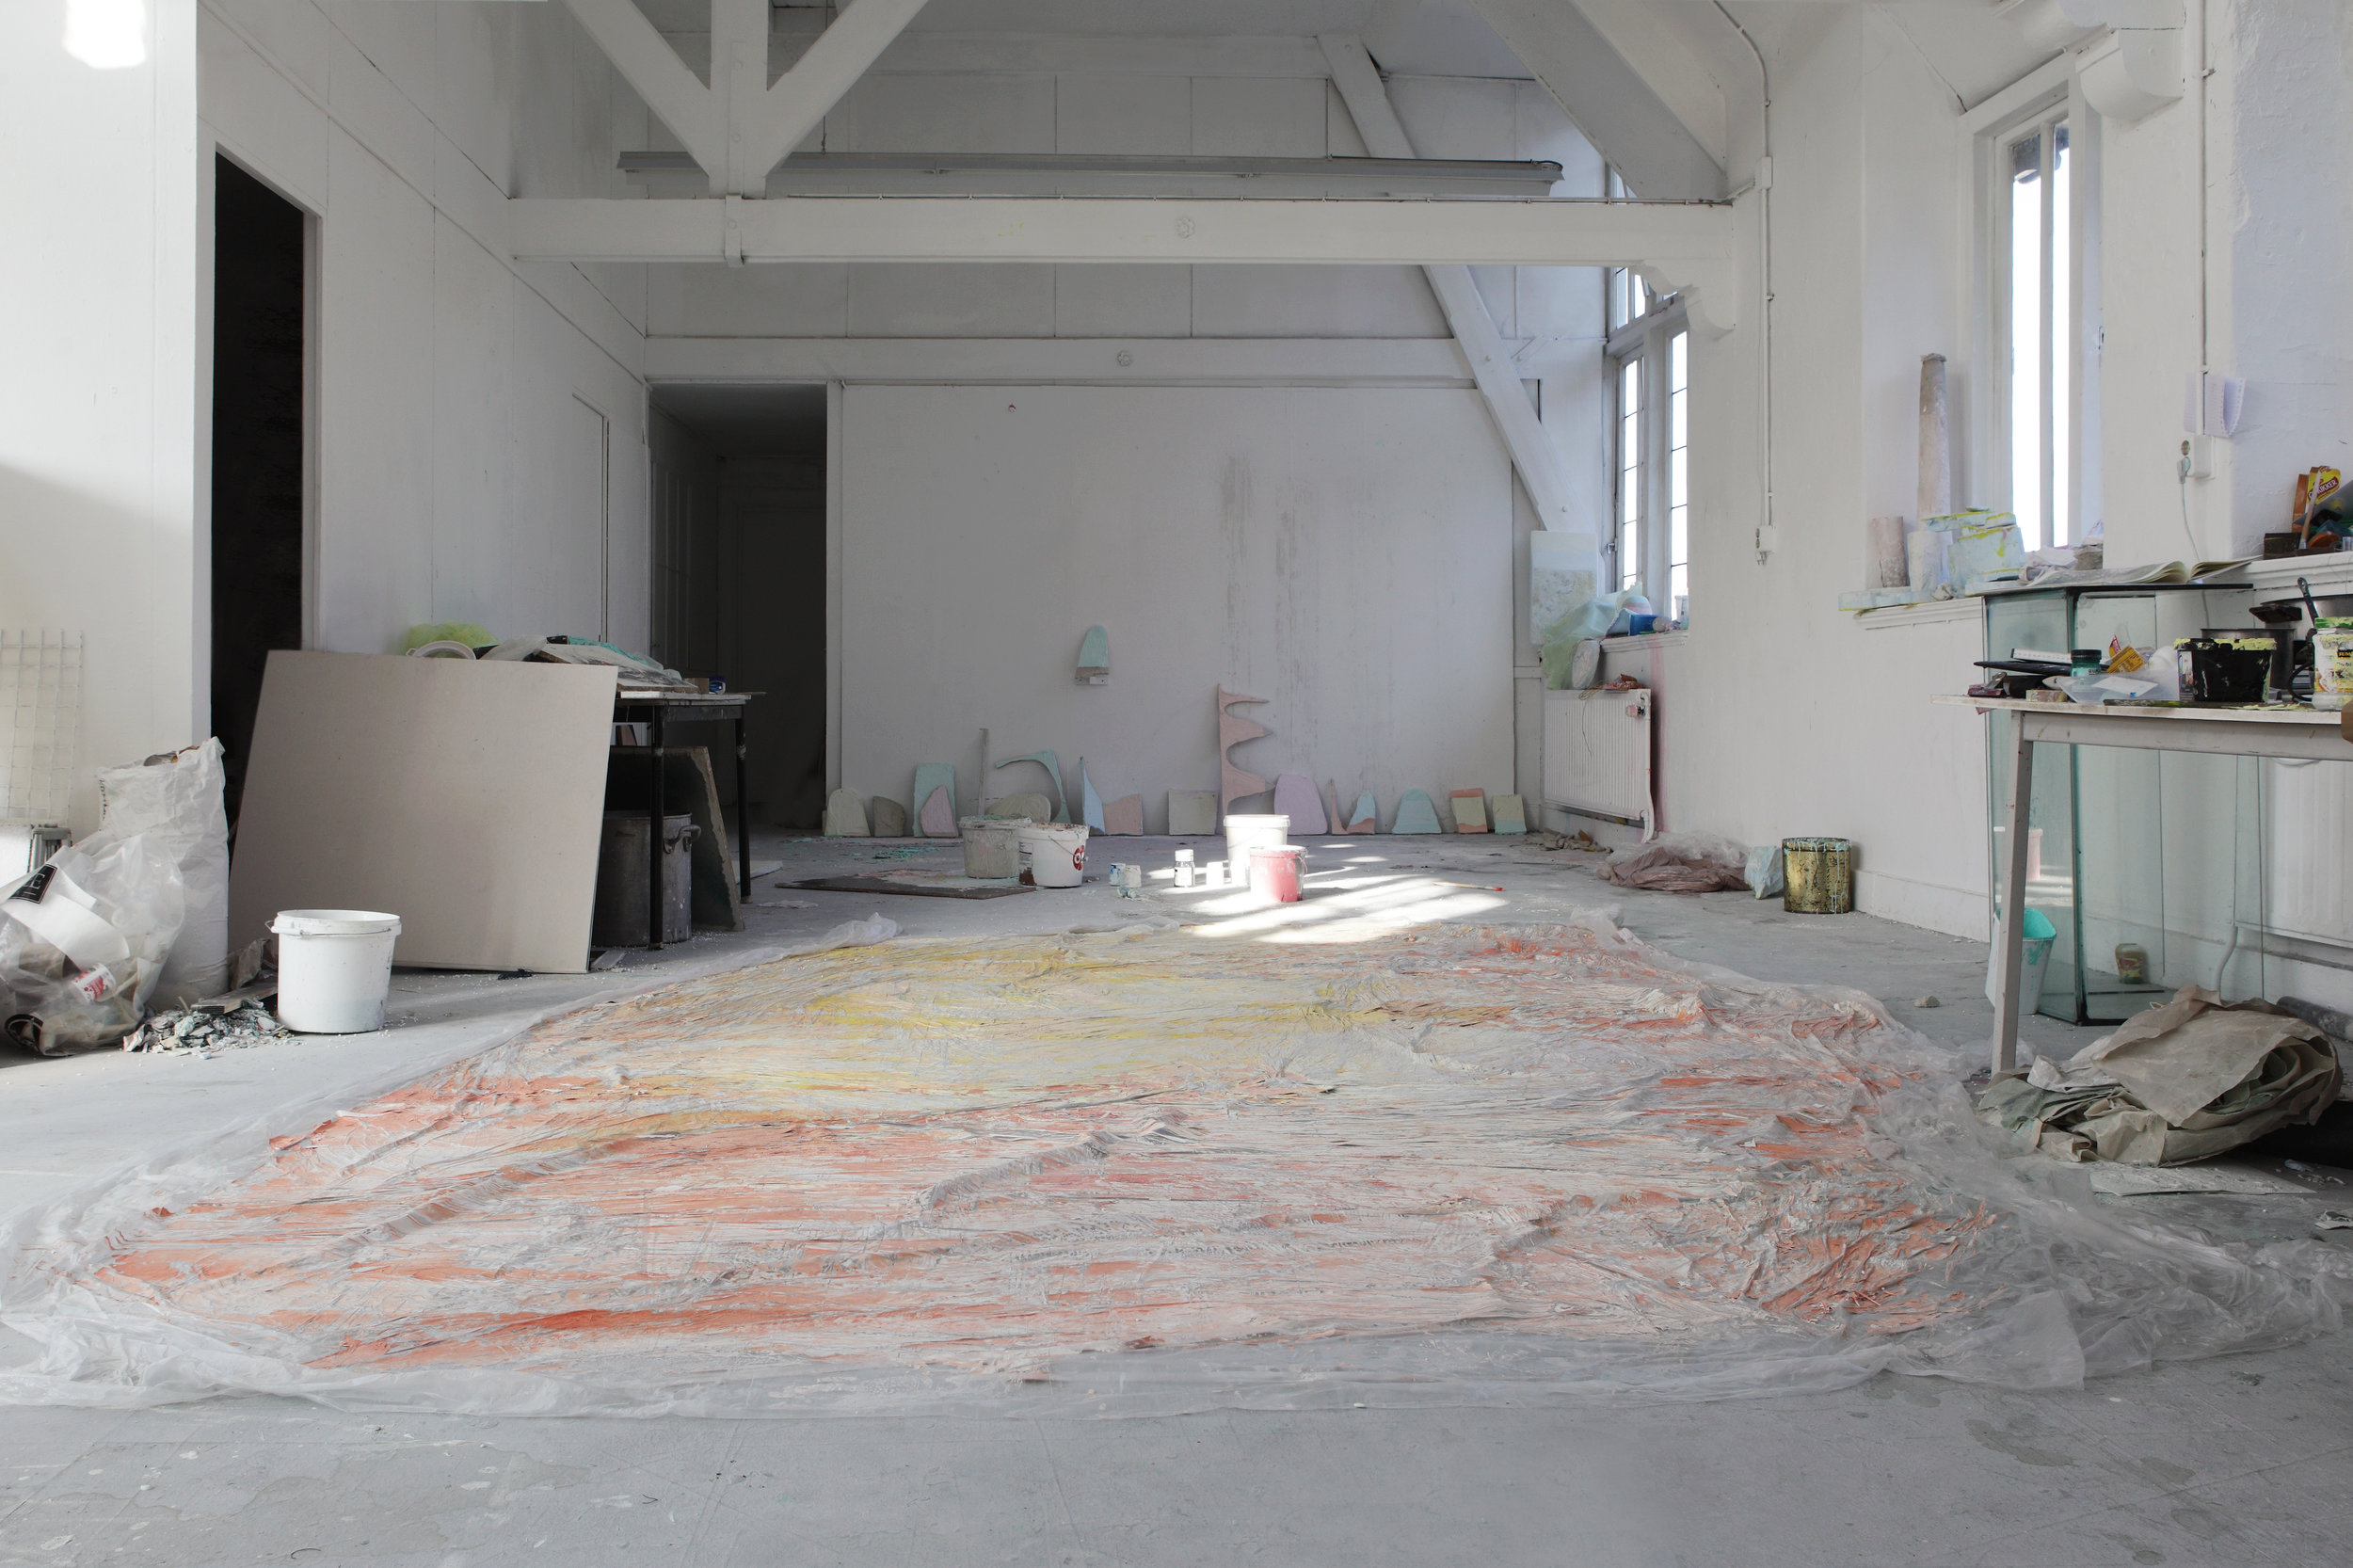 Studio view 2014: Colored sheet - Plastic, various paints, 500 x 200, Maastricht, 2014